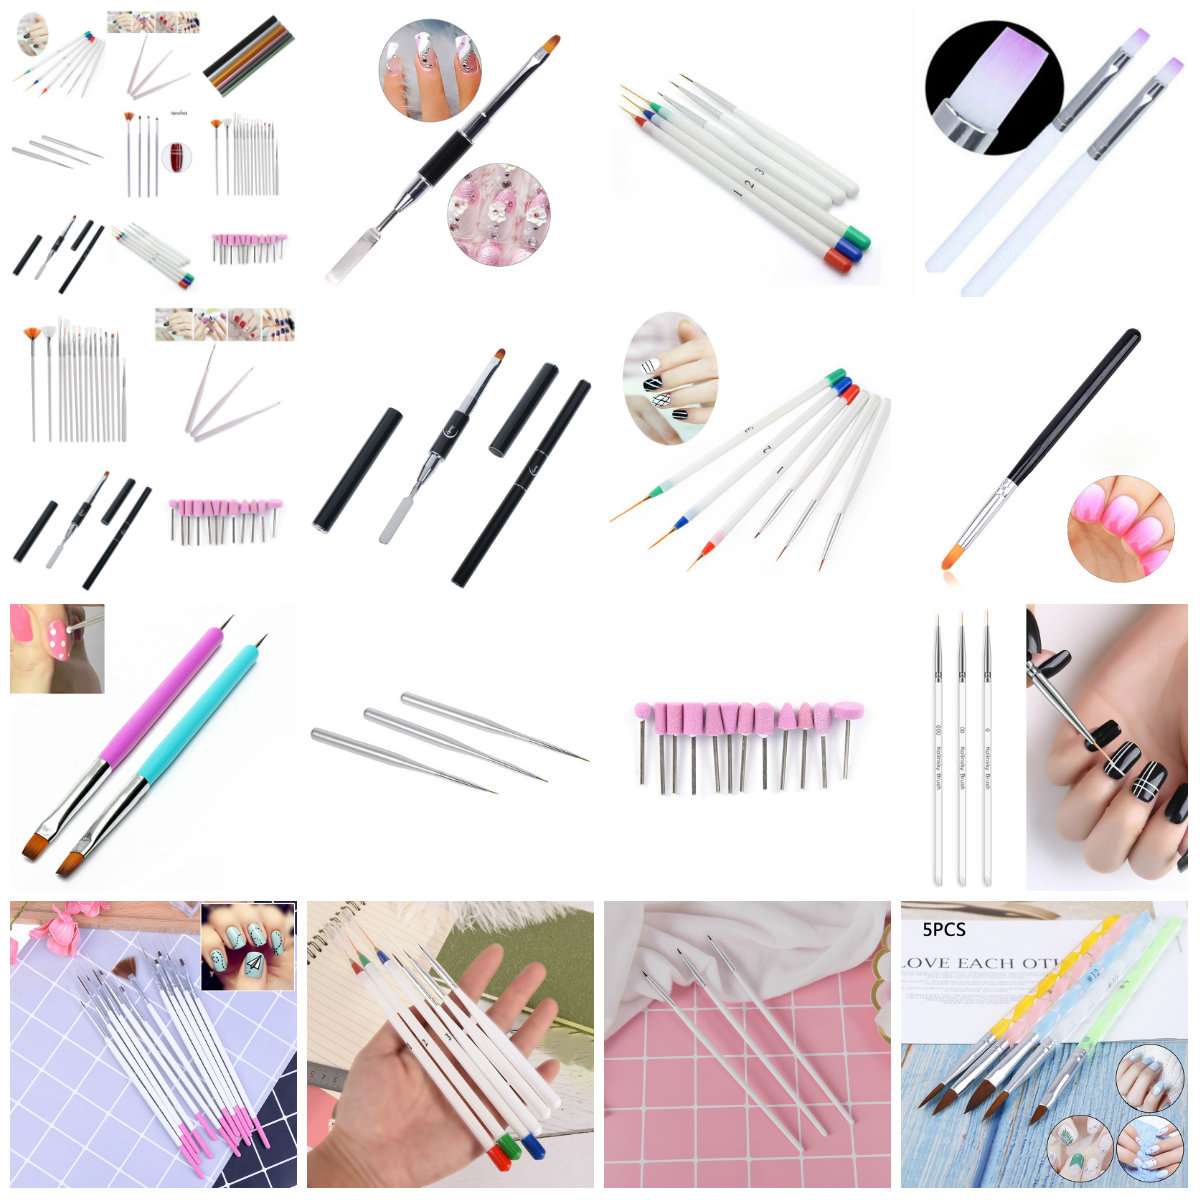 12PCS/5/3/1PCS Nail Art Liner Painting Brush Rhinestones Handle DIY UV Gel Acrylic Tips Grid Stripes Drawing Pen Manicure Tools